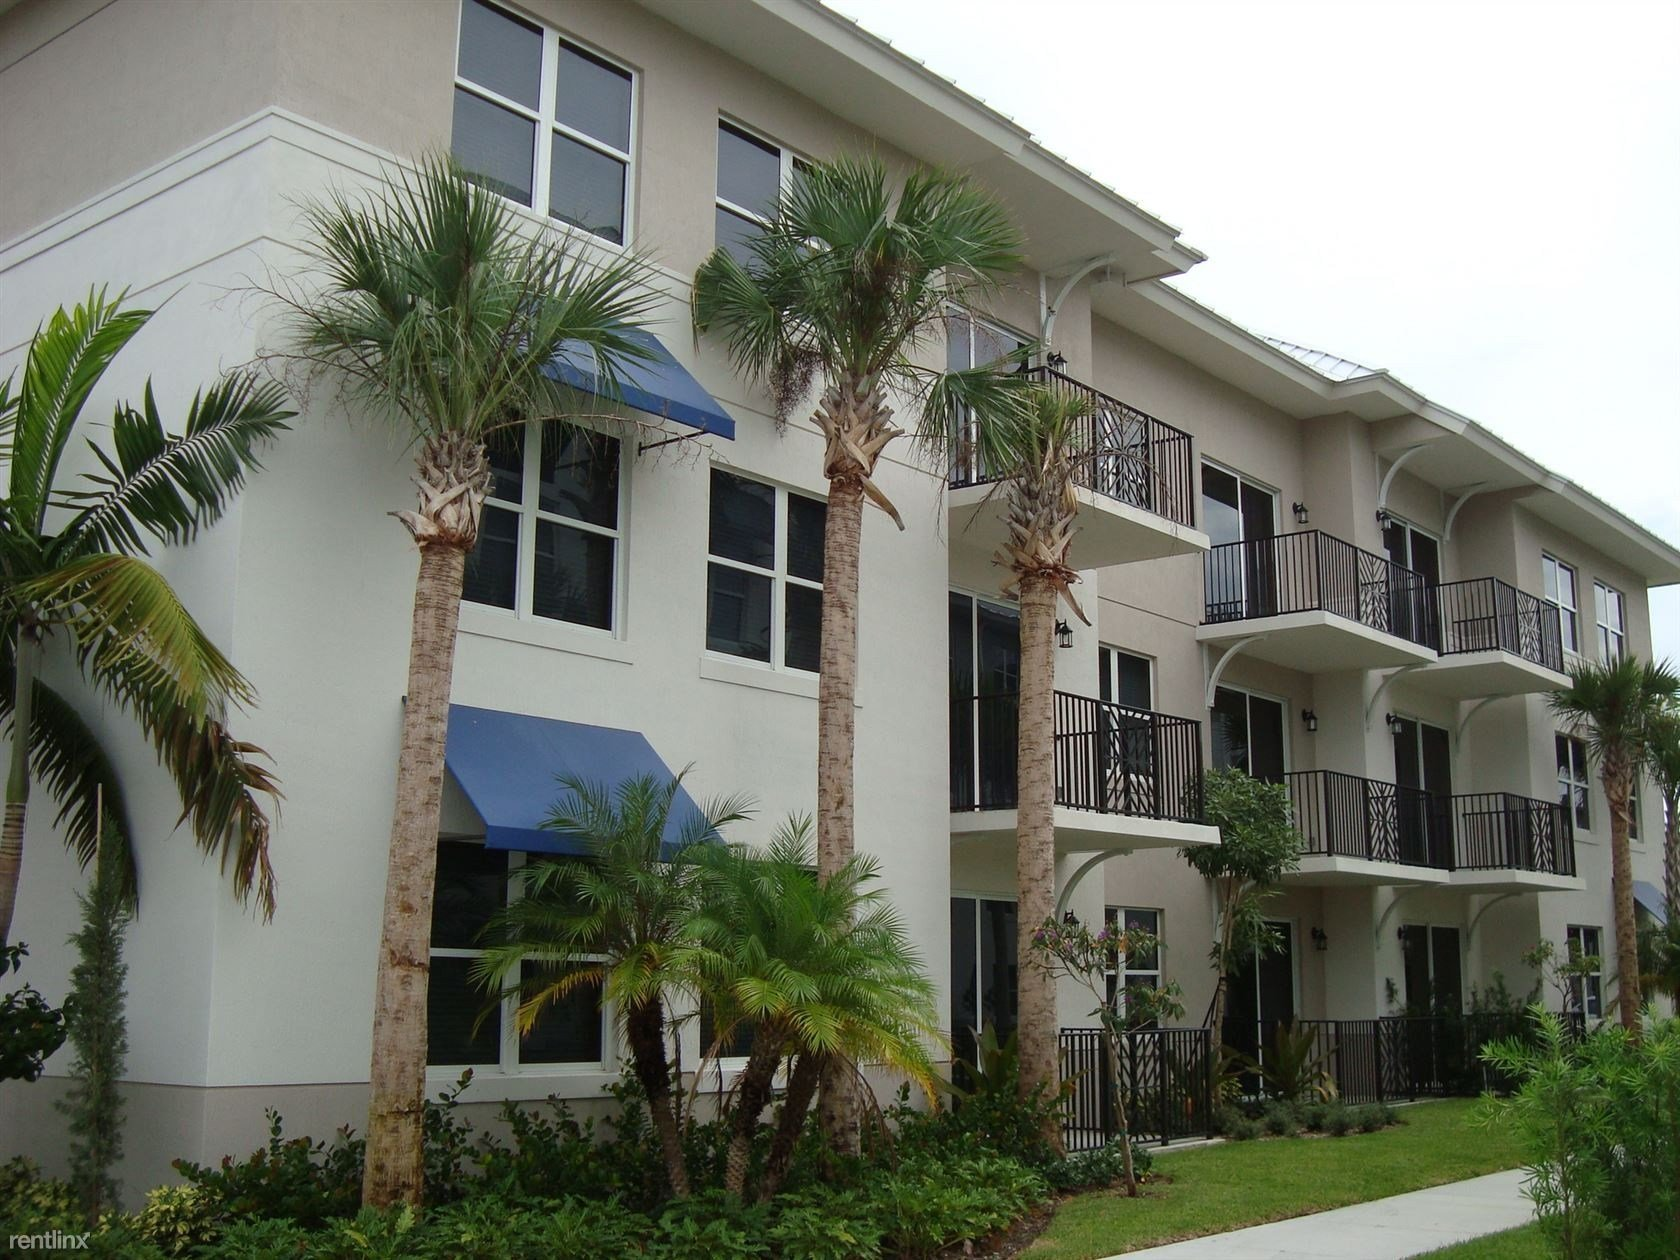 Best 1517 Cameron Samuel Ln West Palm Beach Fl 33401 1 Bedroom Apartment For Rent Padmapper With Pictures